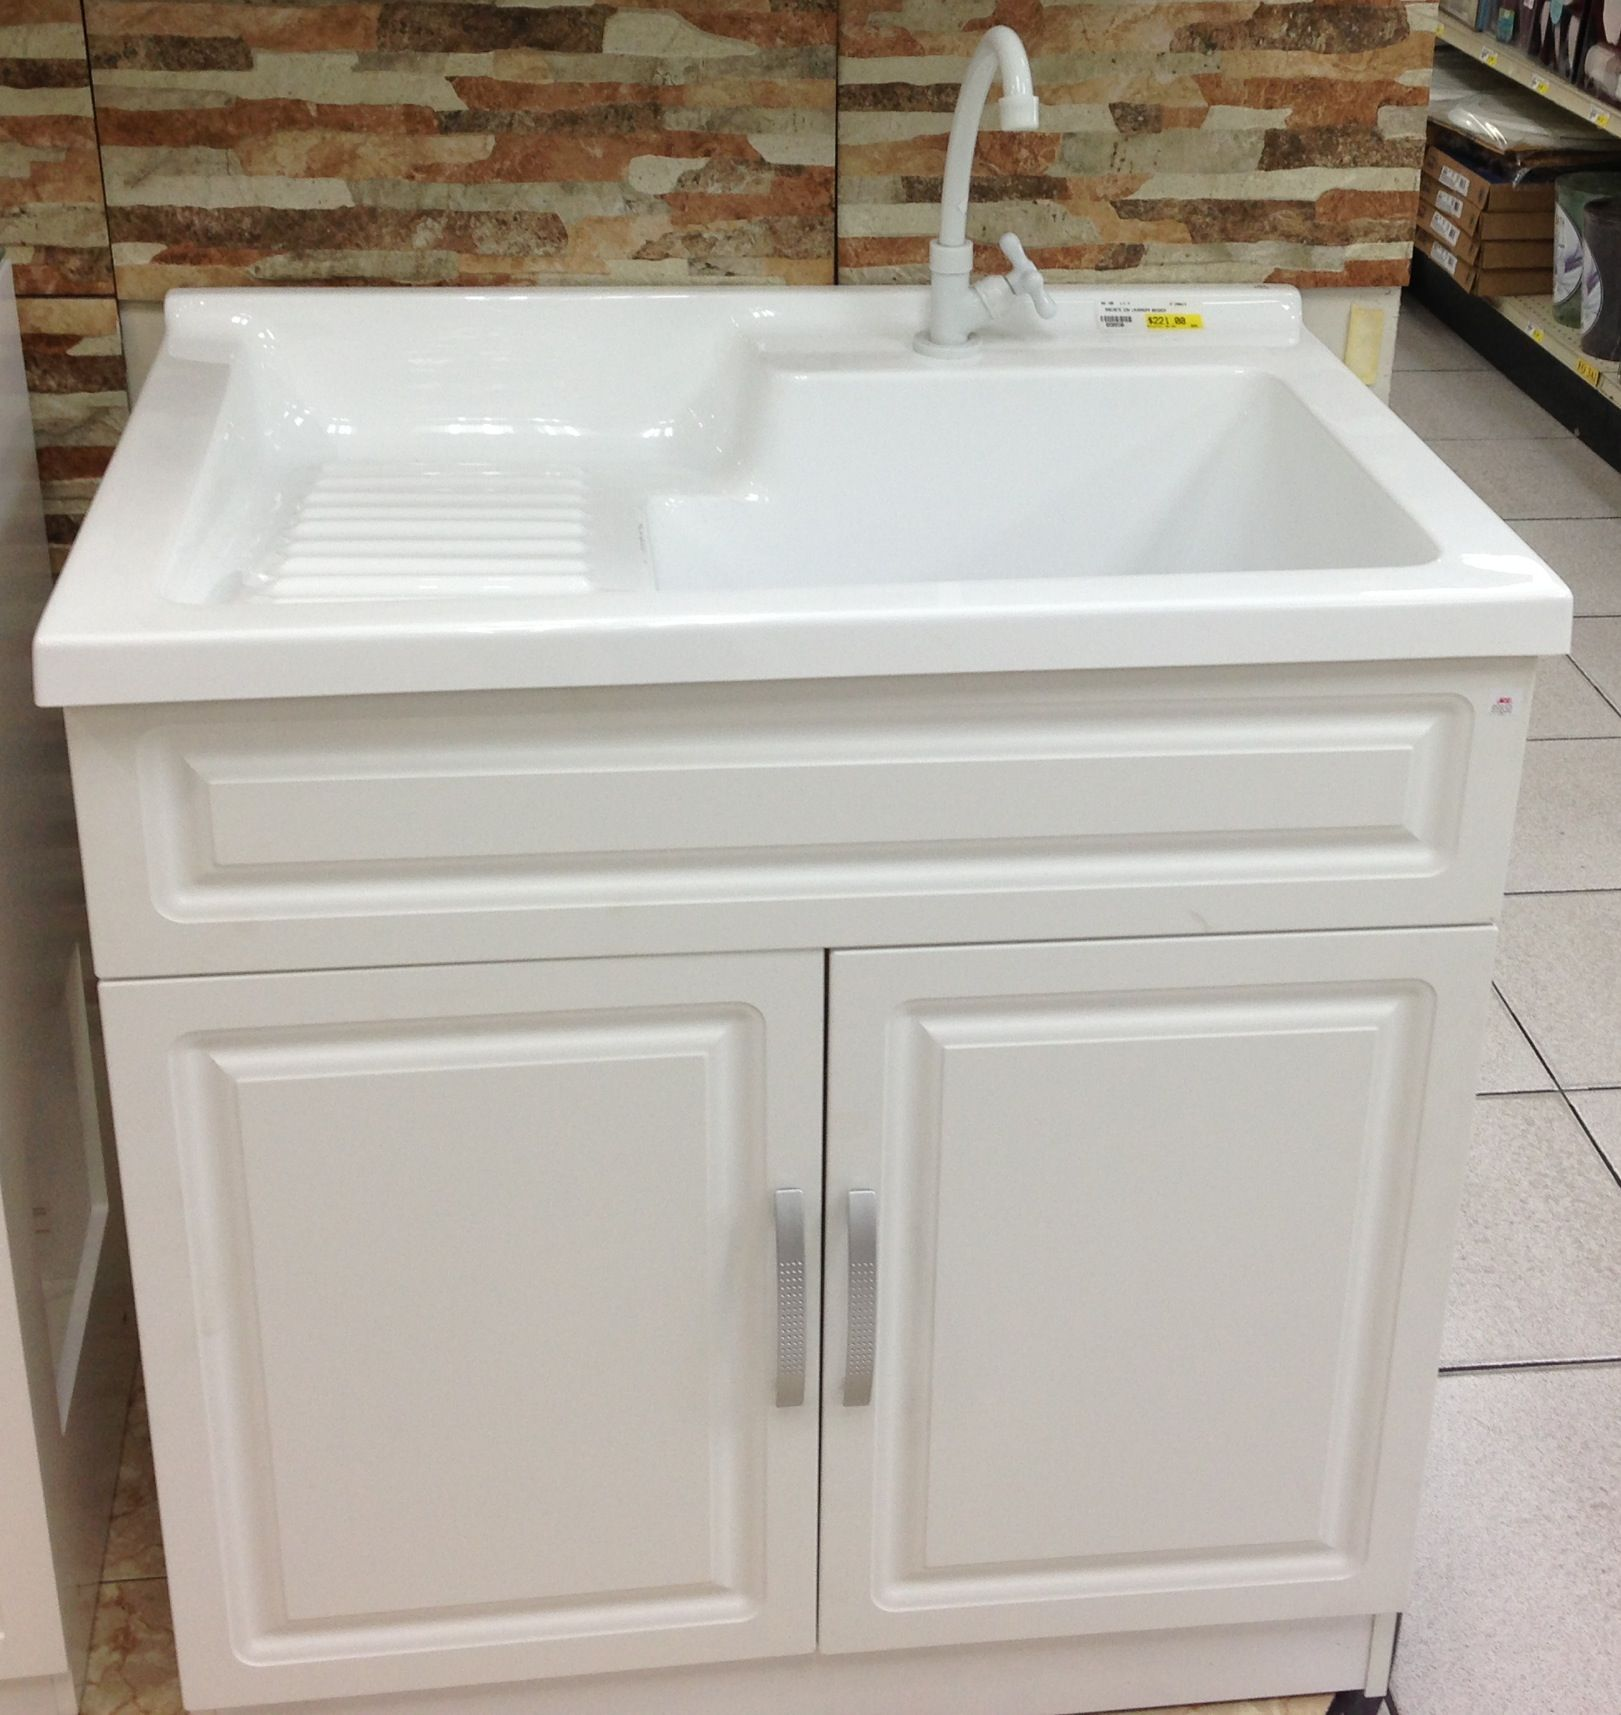 Functional Laundry Sink Corstone Self Rimming at Lowes for $145 Laundry Room BathroomLaundry Room StorageCottage